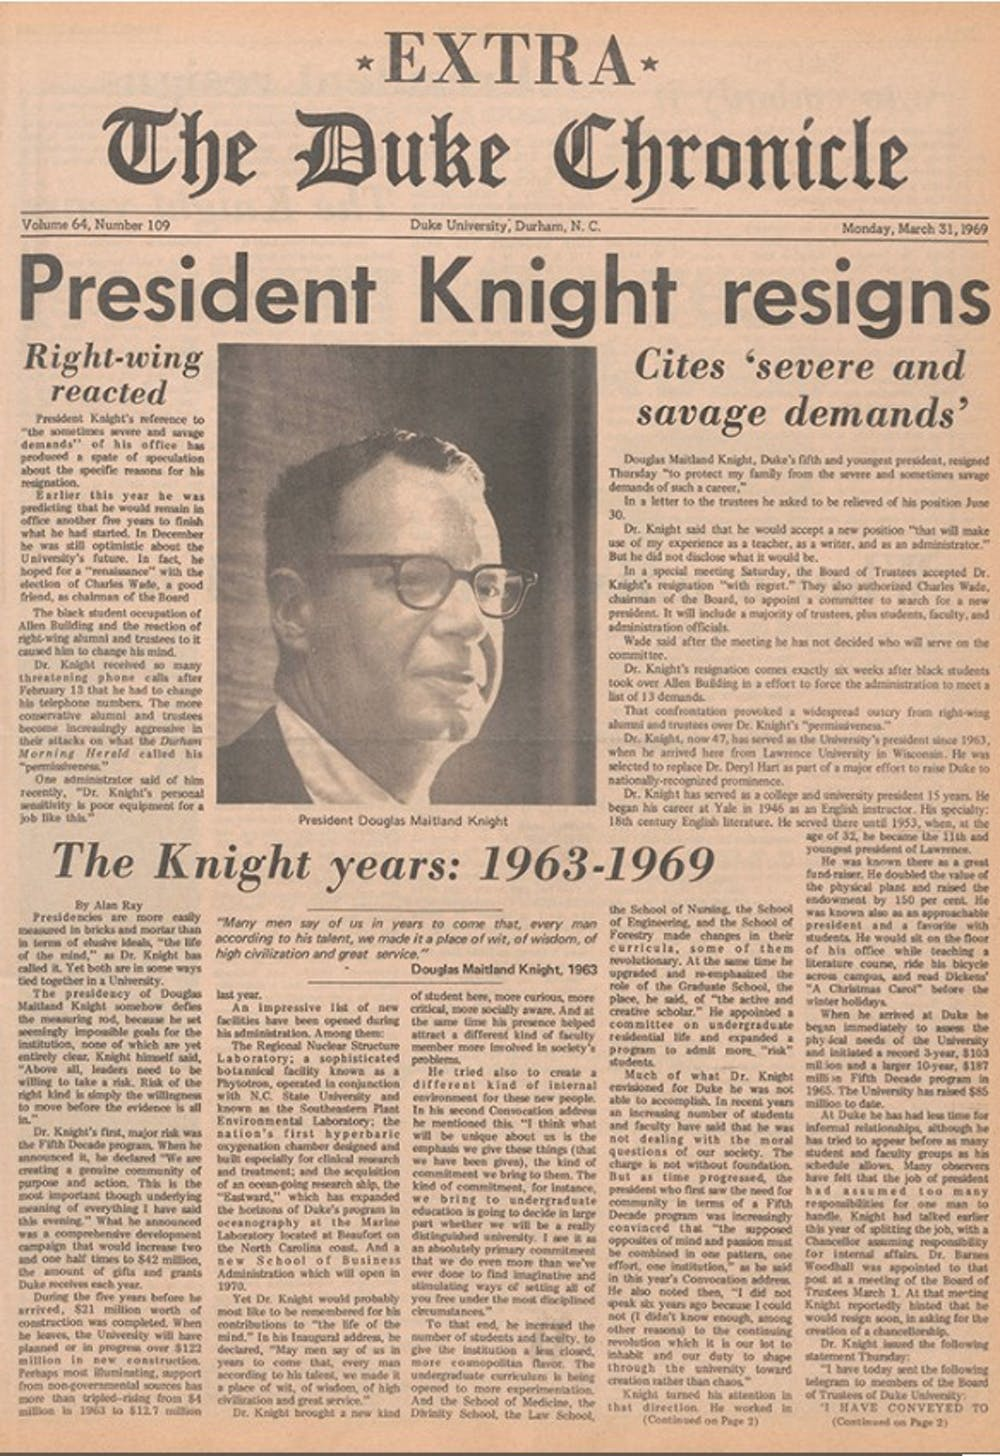 President Douglas Knight resigns in 1969.